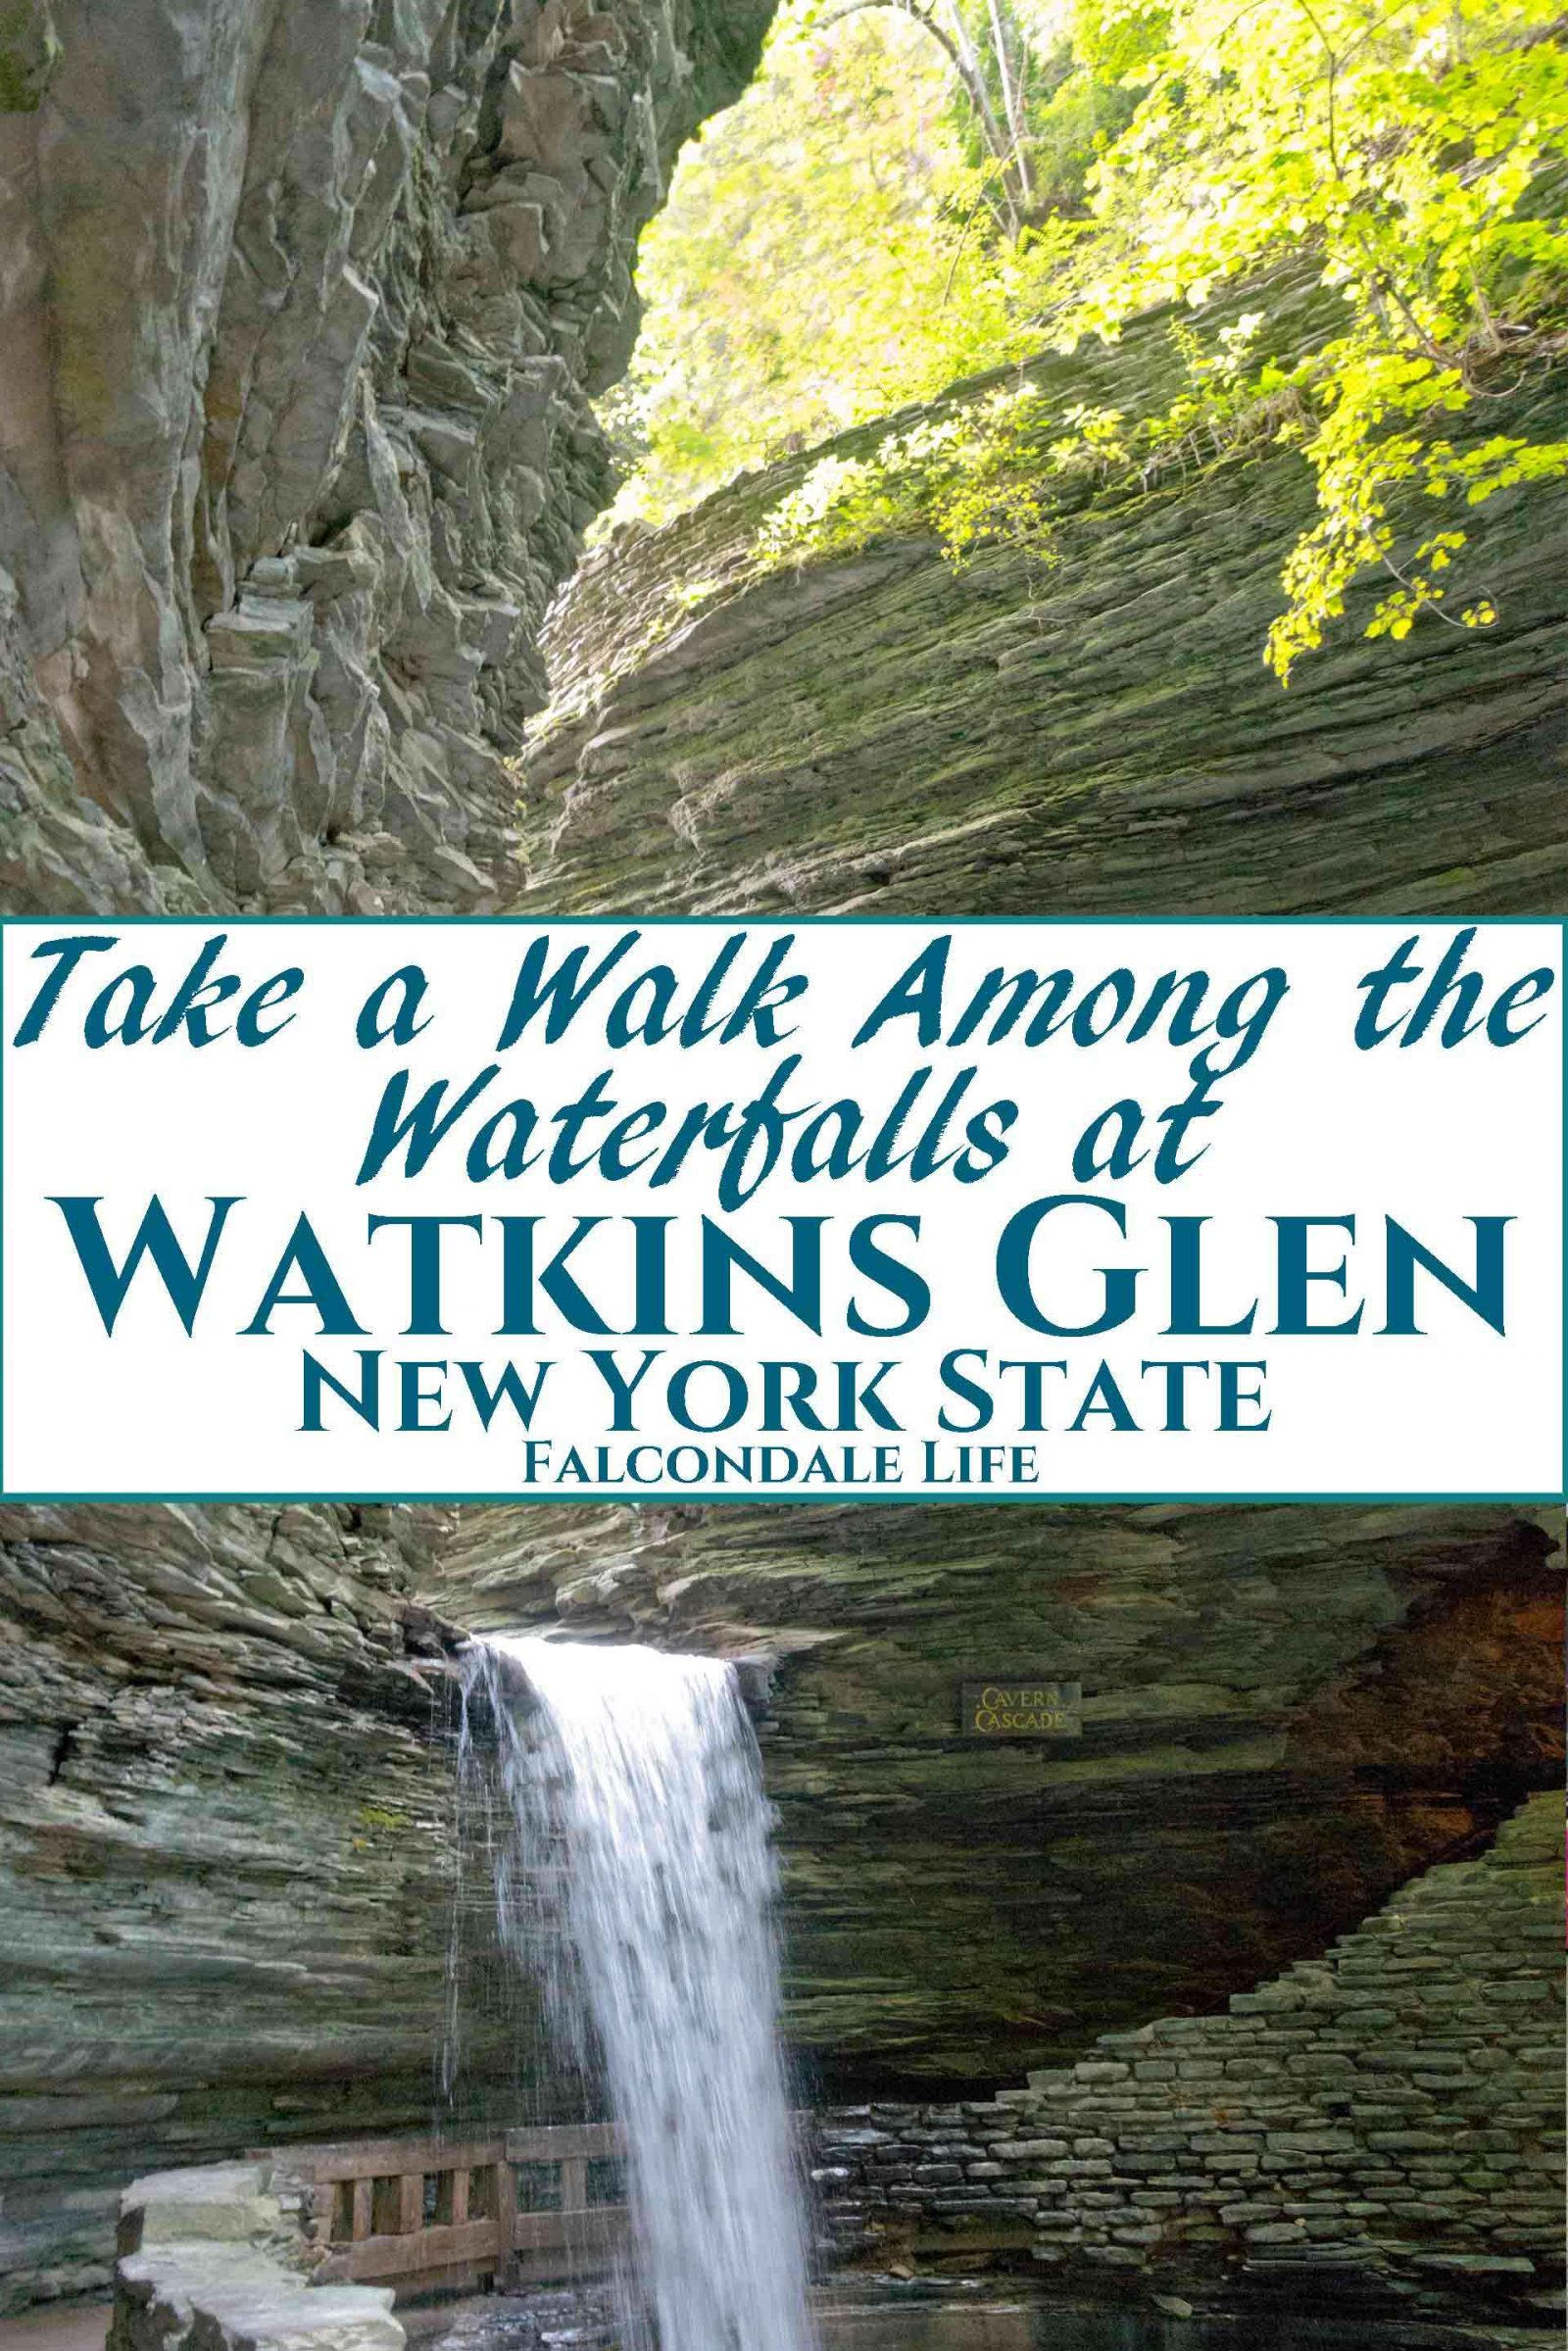 Waterfalls and beautiful river gorge. Take a walk among the waterfalls at Watkins Glen, New York State. Watkins Glen in New York State might be the ultimate waterfall walk. This beautiful river gorge has 19 waterfalls along a short hiking trail with stunning views. An easy walk for families using the shuttle bus to the top. Read these useful photography tips to capture the magical scenery.